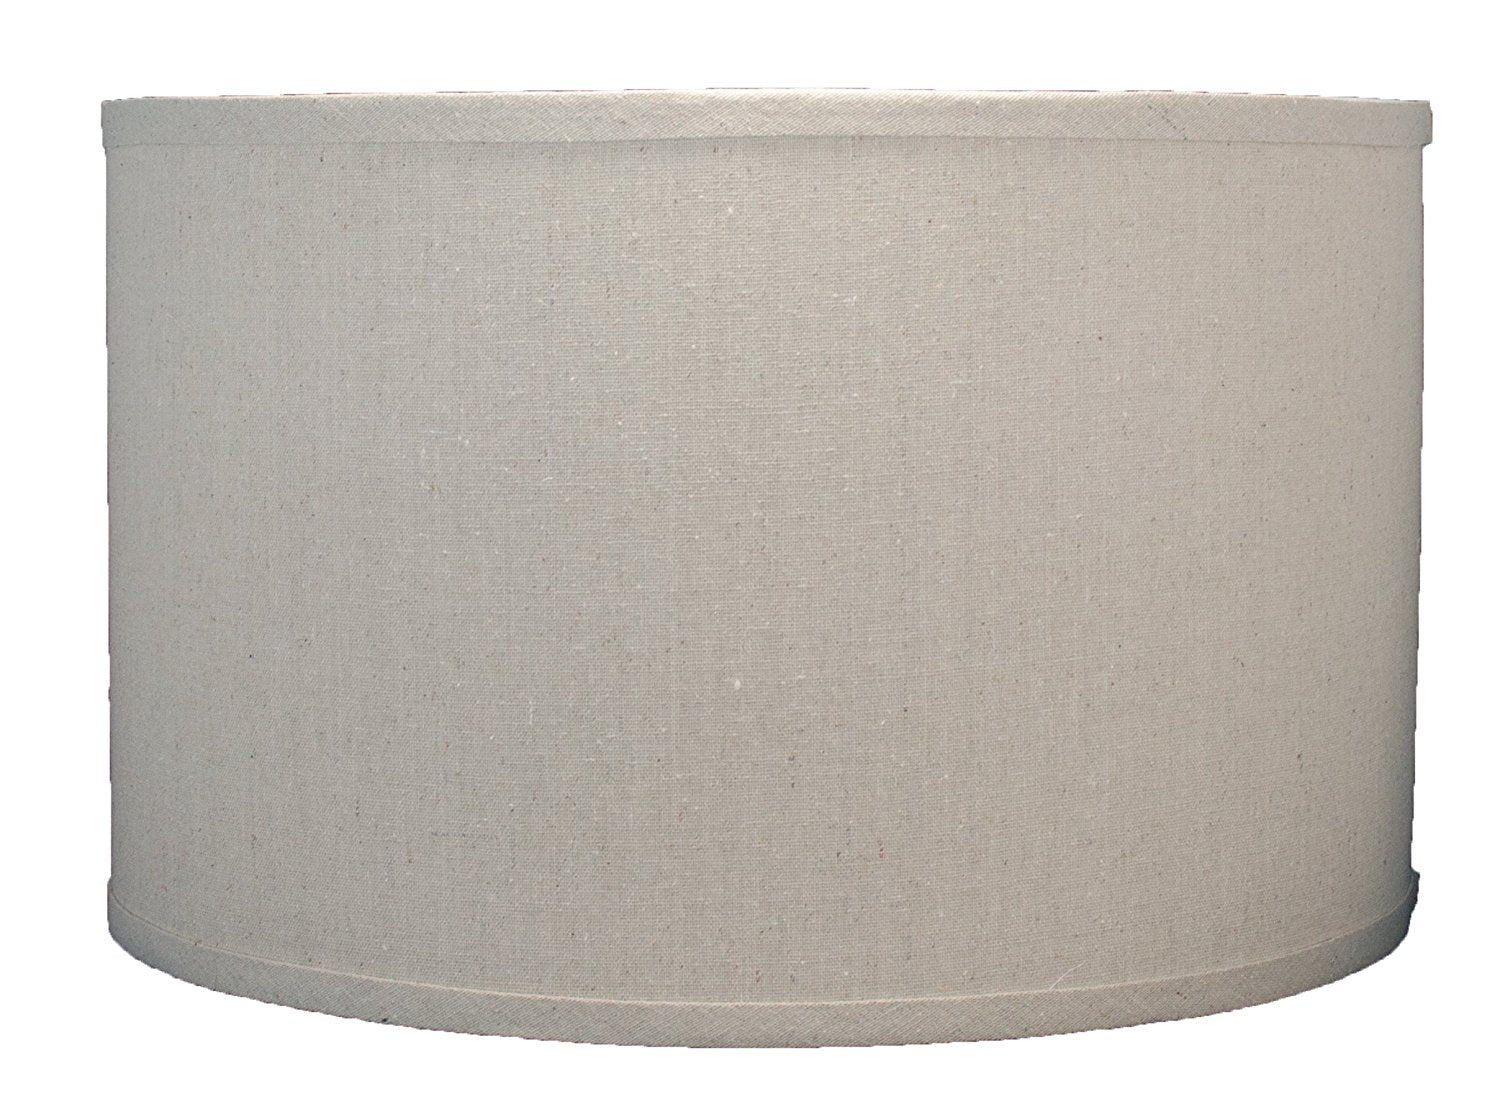 Linen Drum Lamp Shade 16 Inch By 16 Inch By 10 Inch Natural Spider Urbanest